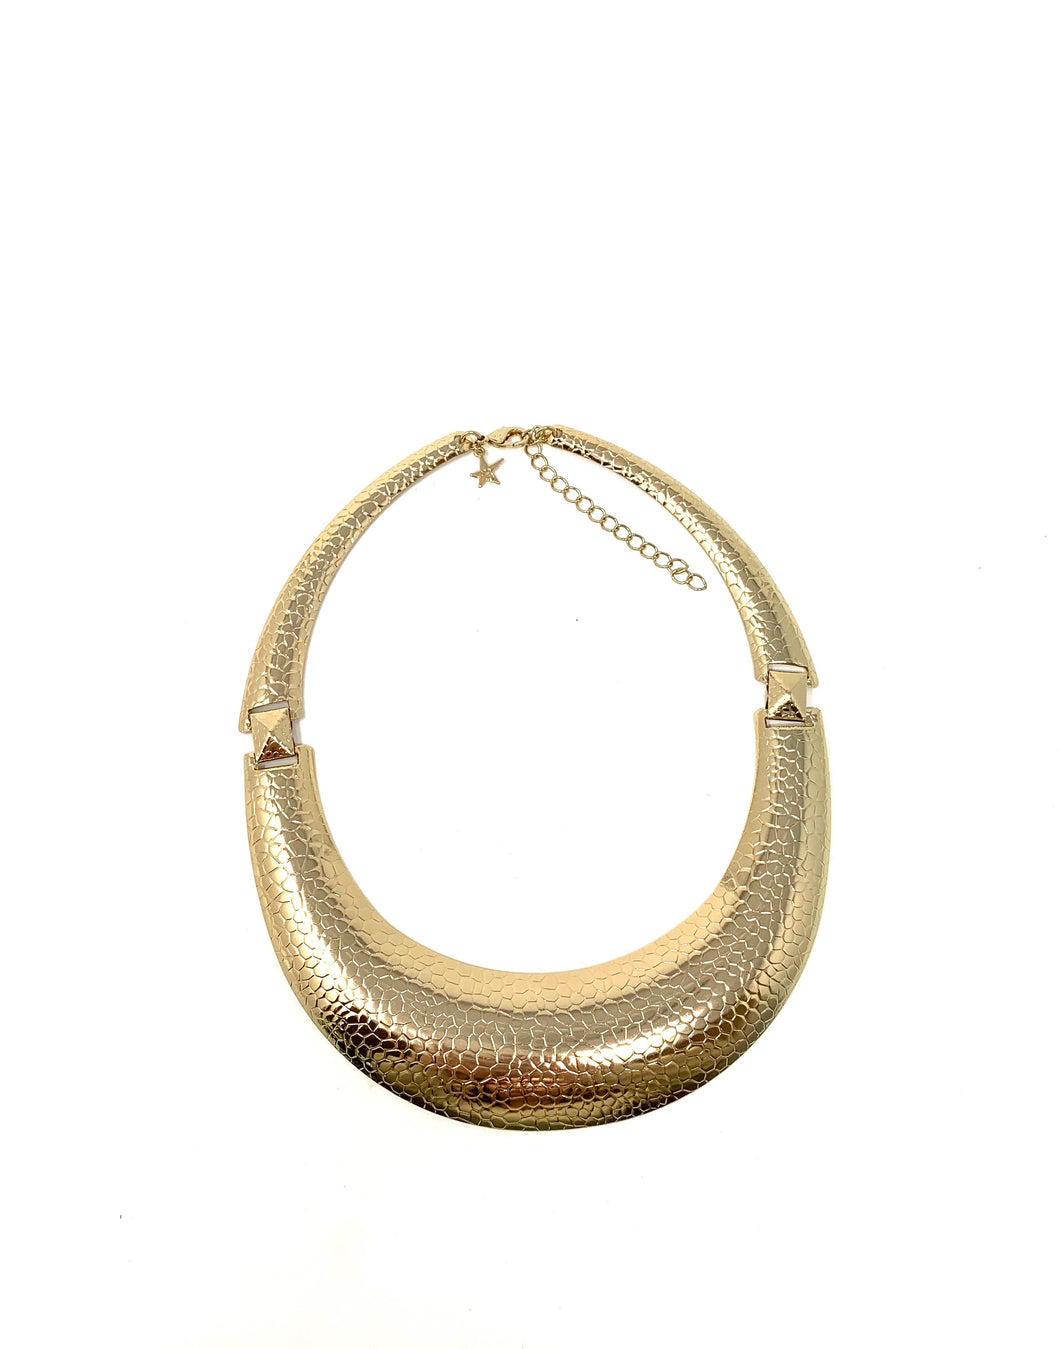 Snakeskin Bohemien Golden Metal Necklace